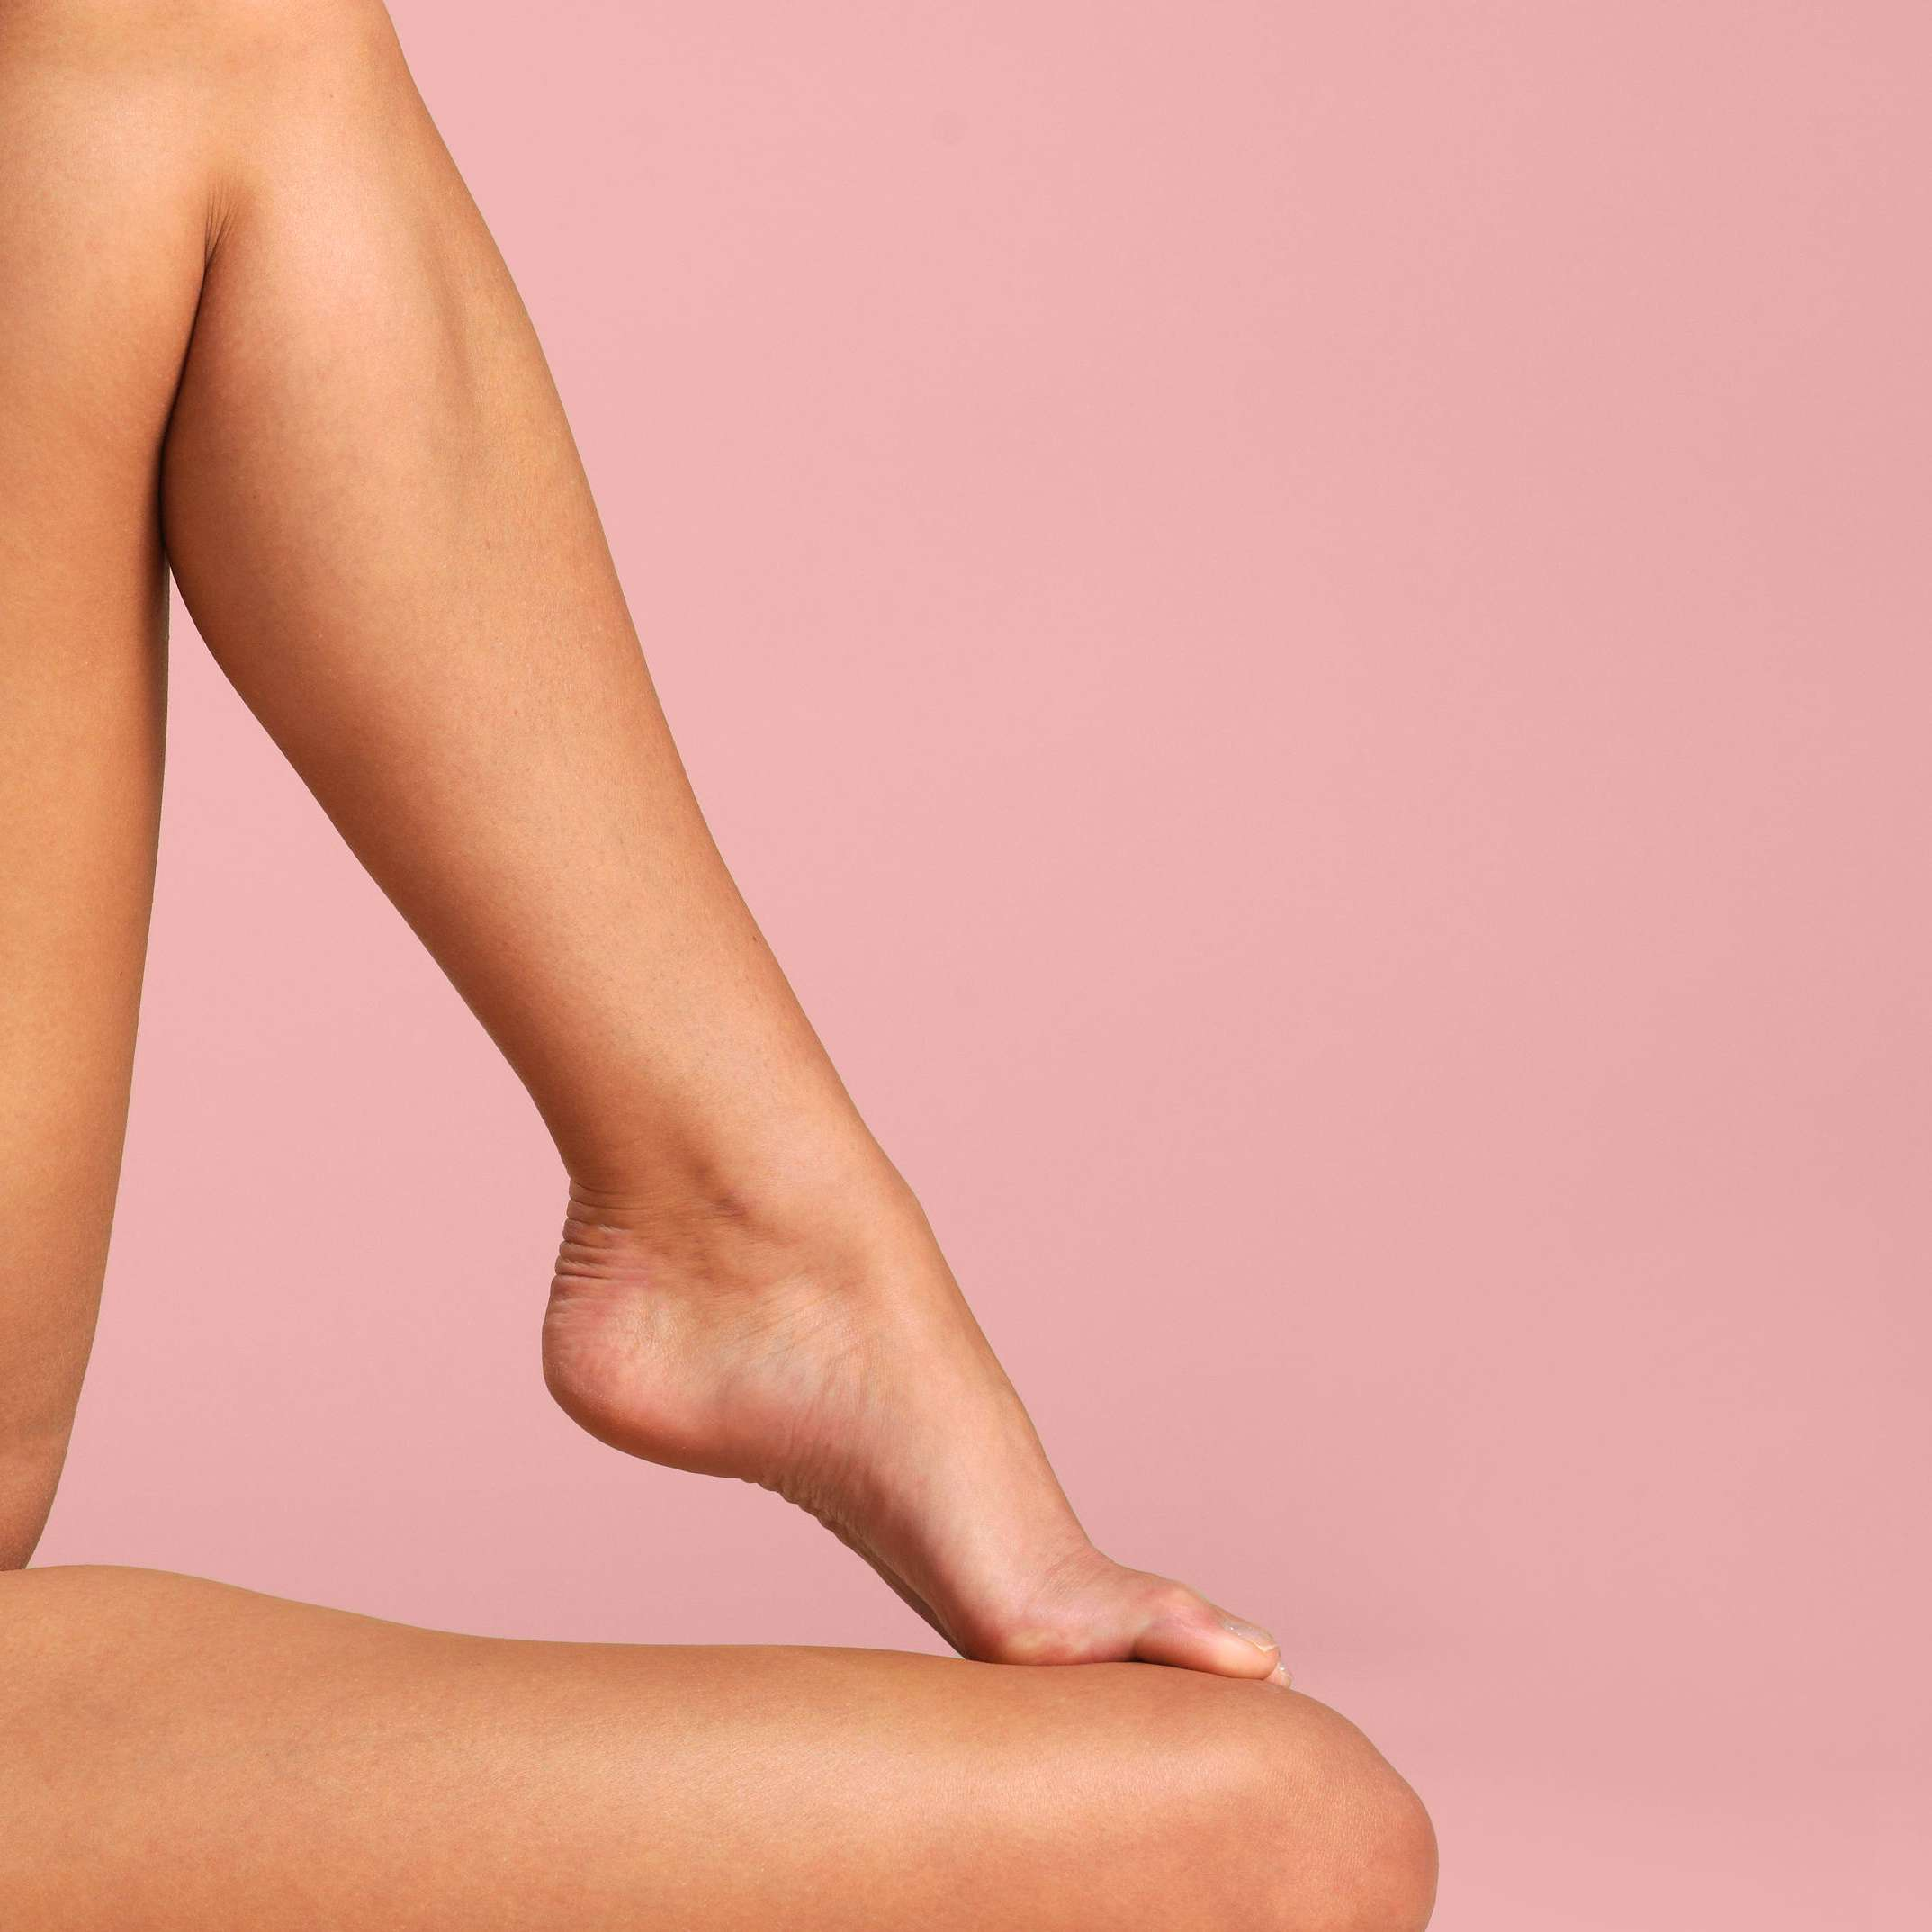 Woman's legs against a pink backdrop